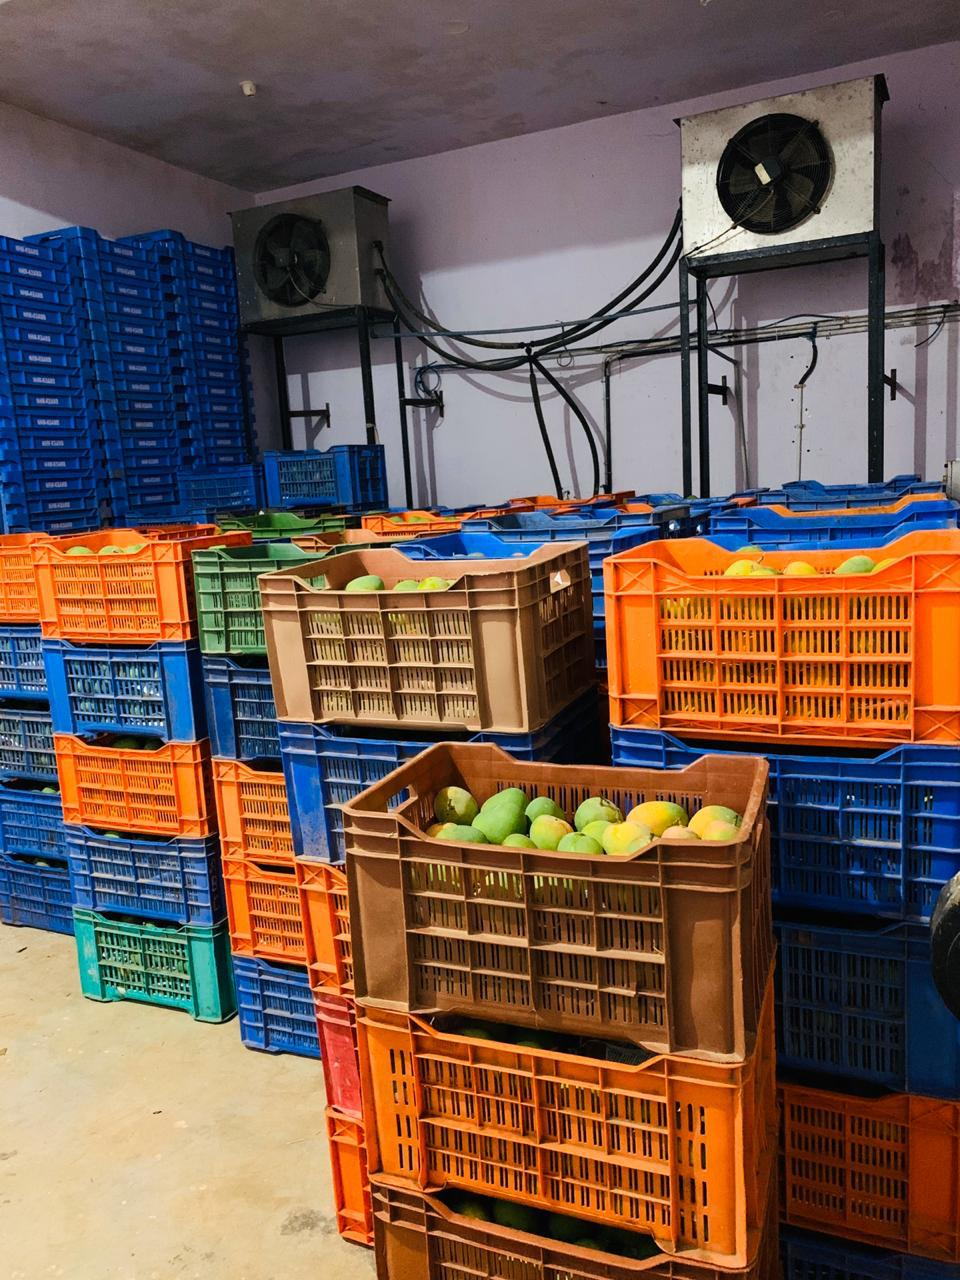 Mangoes inside a ripening chamber | By special arrangement